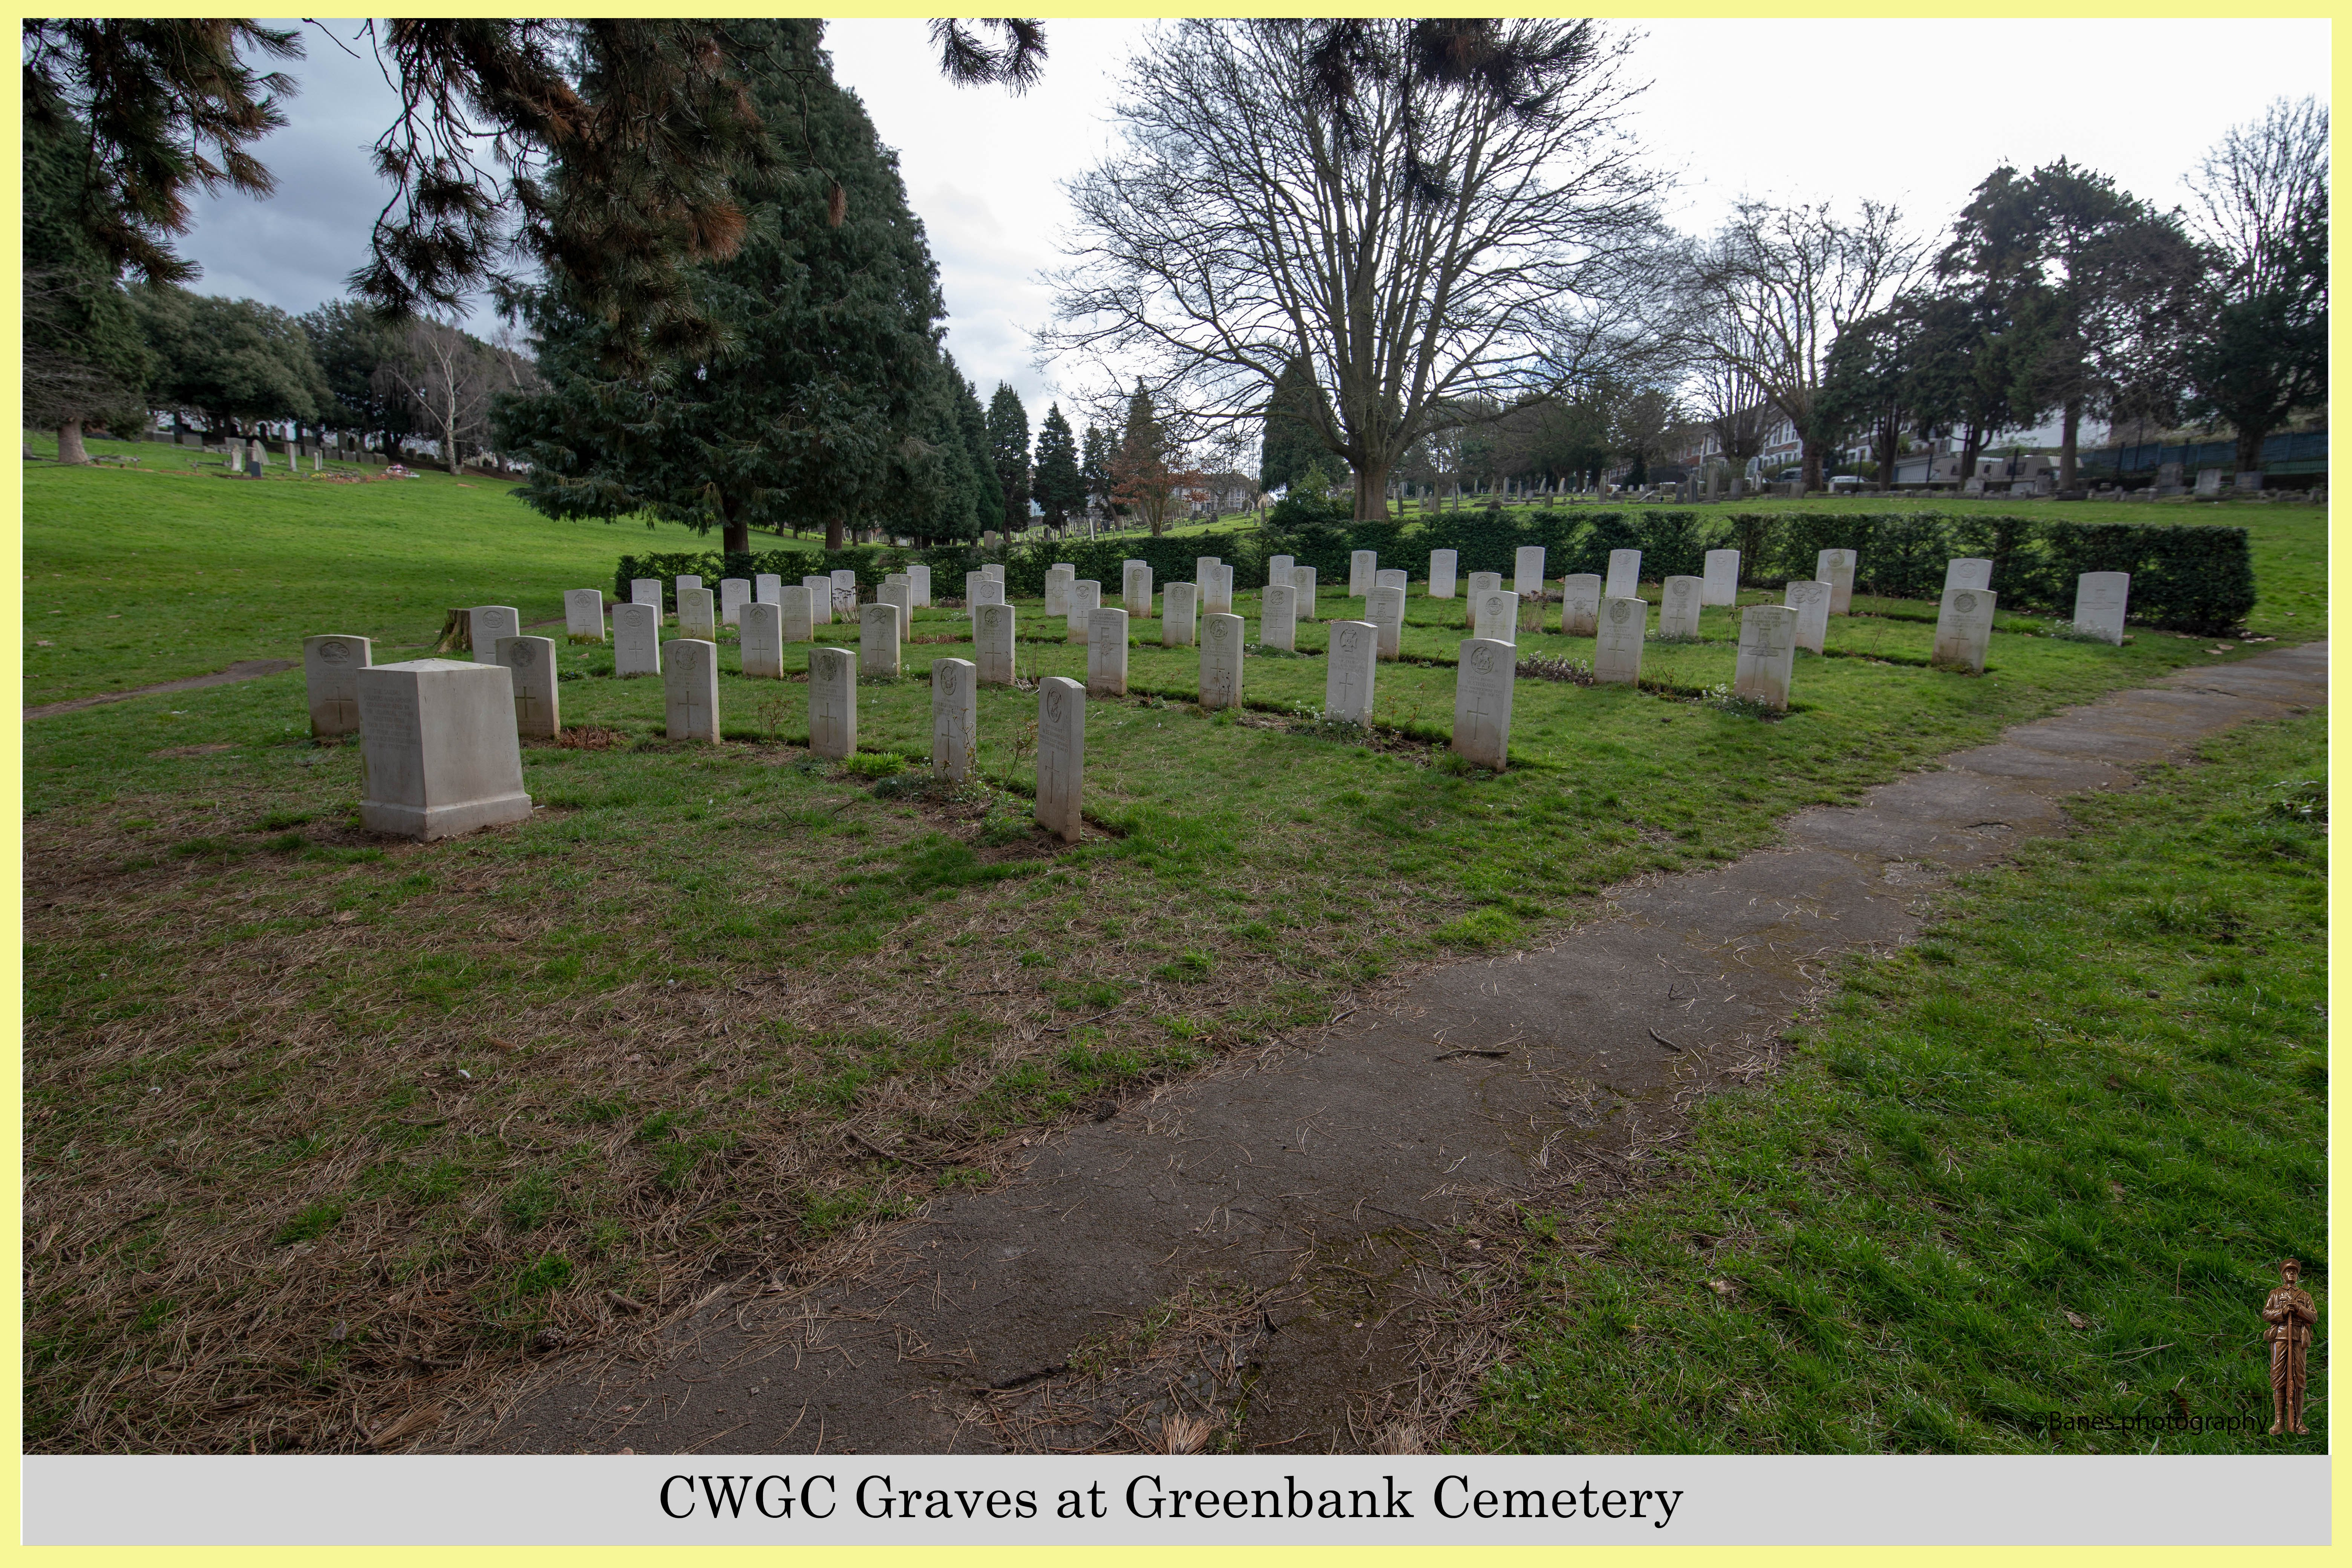 CWGC Graves at Greenbank Cemetery (03) (Postcard) Ref 2754-2